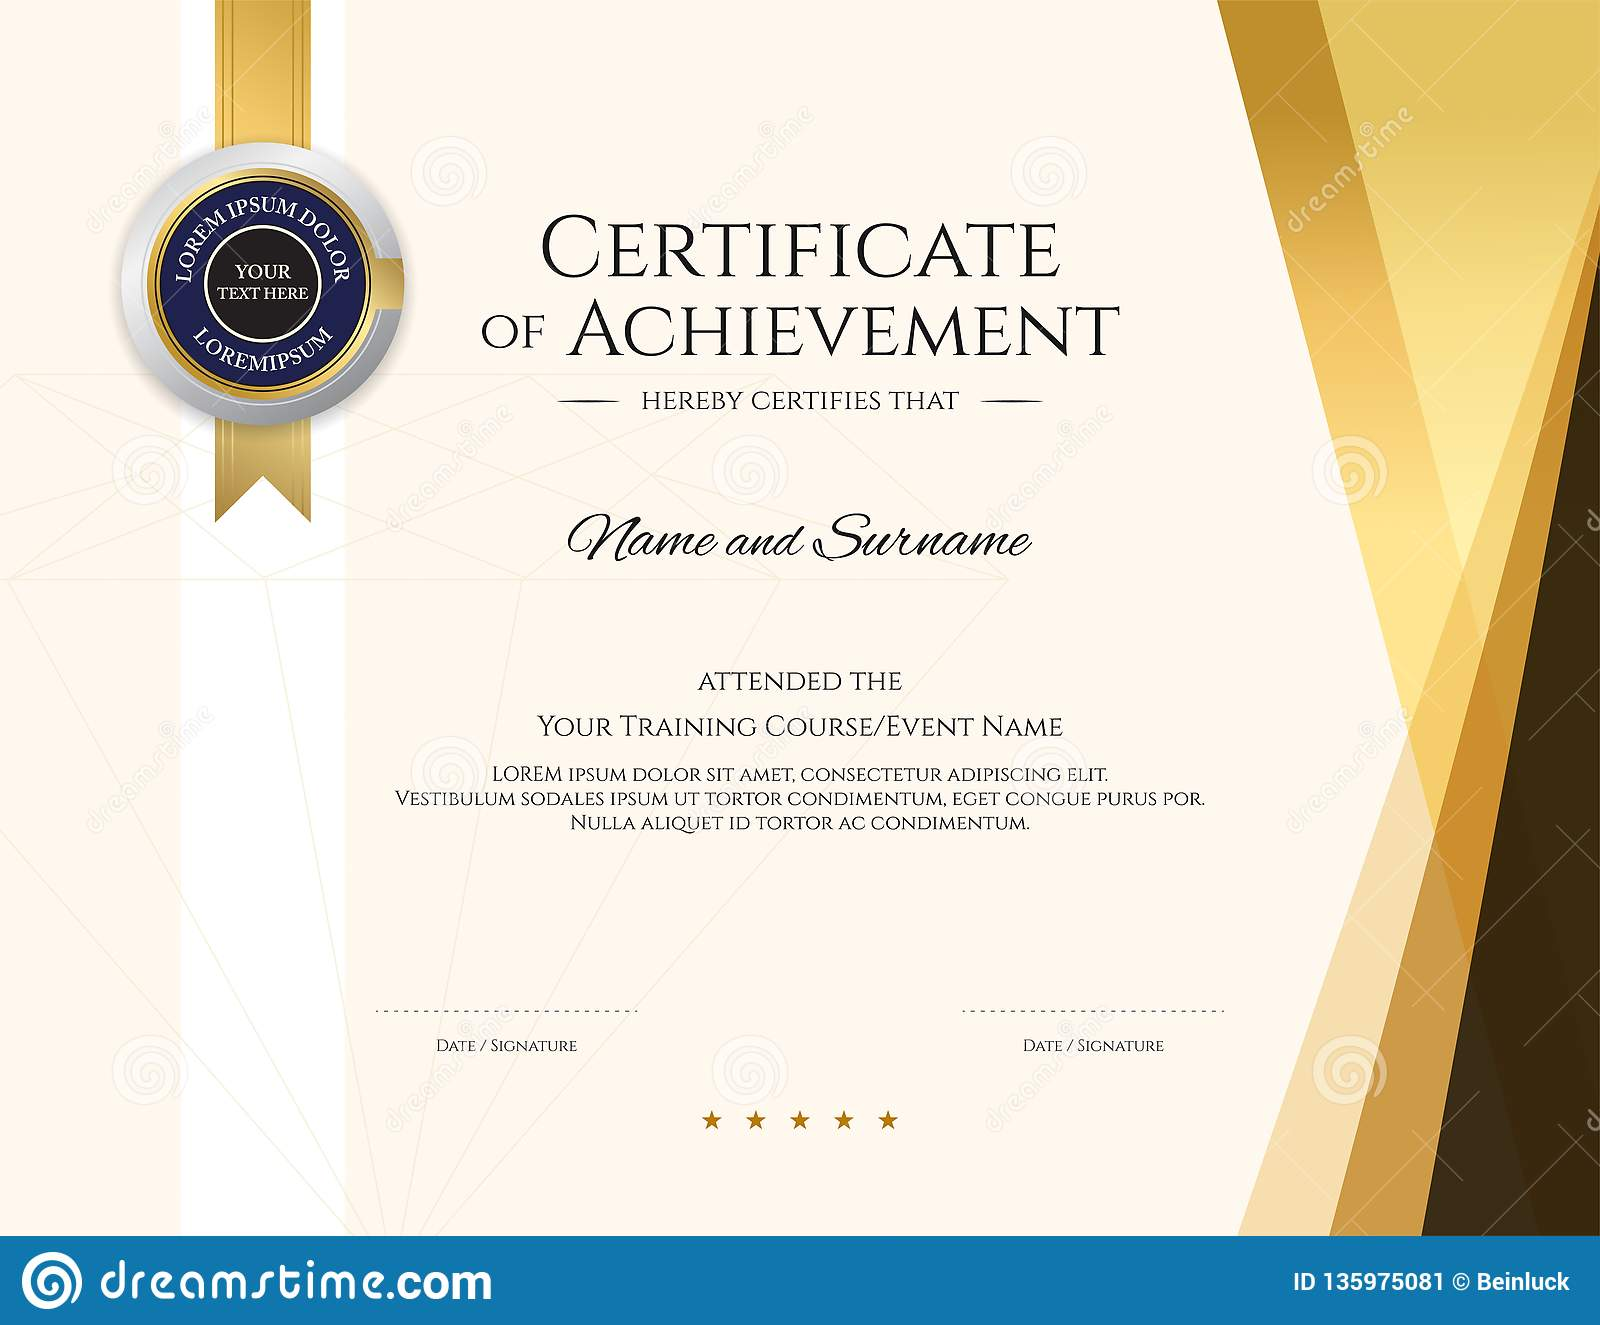 Modern Certificate Template With Elegant Border Frame Diploma Design For Graduation Or